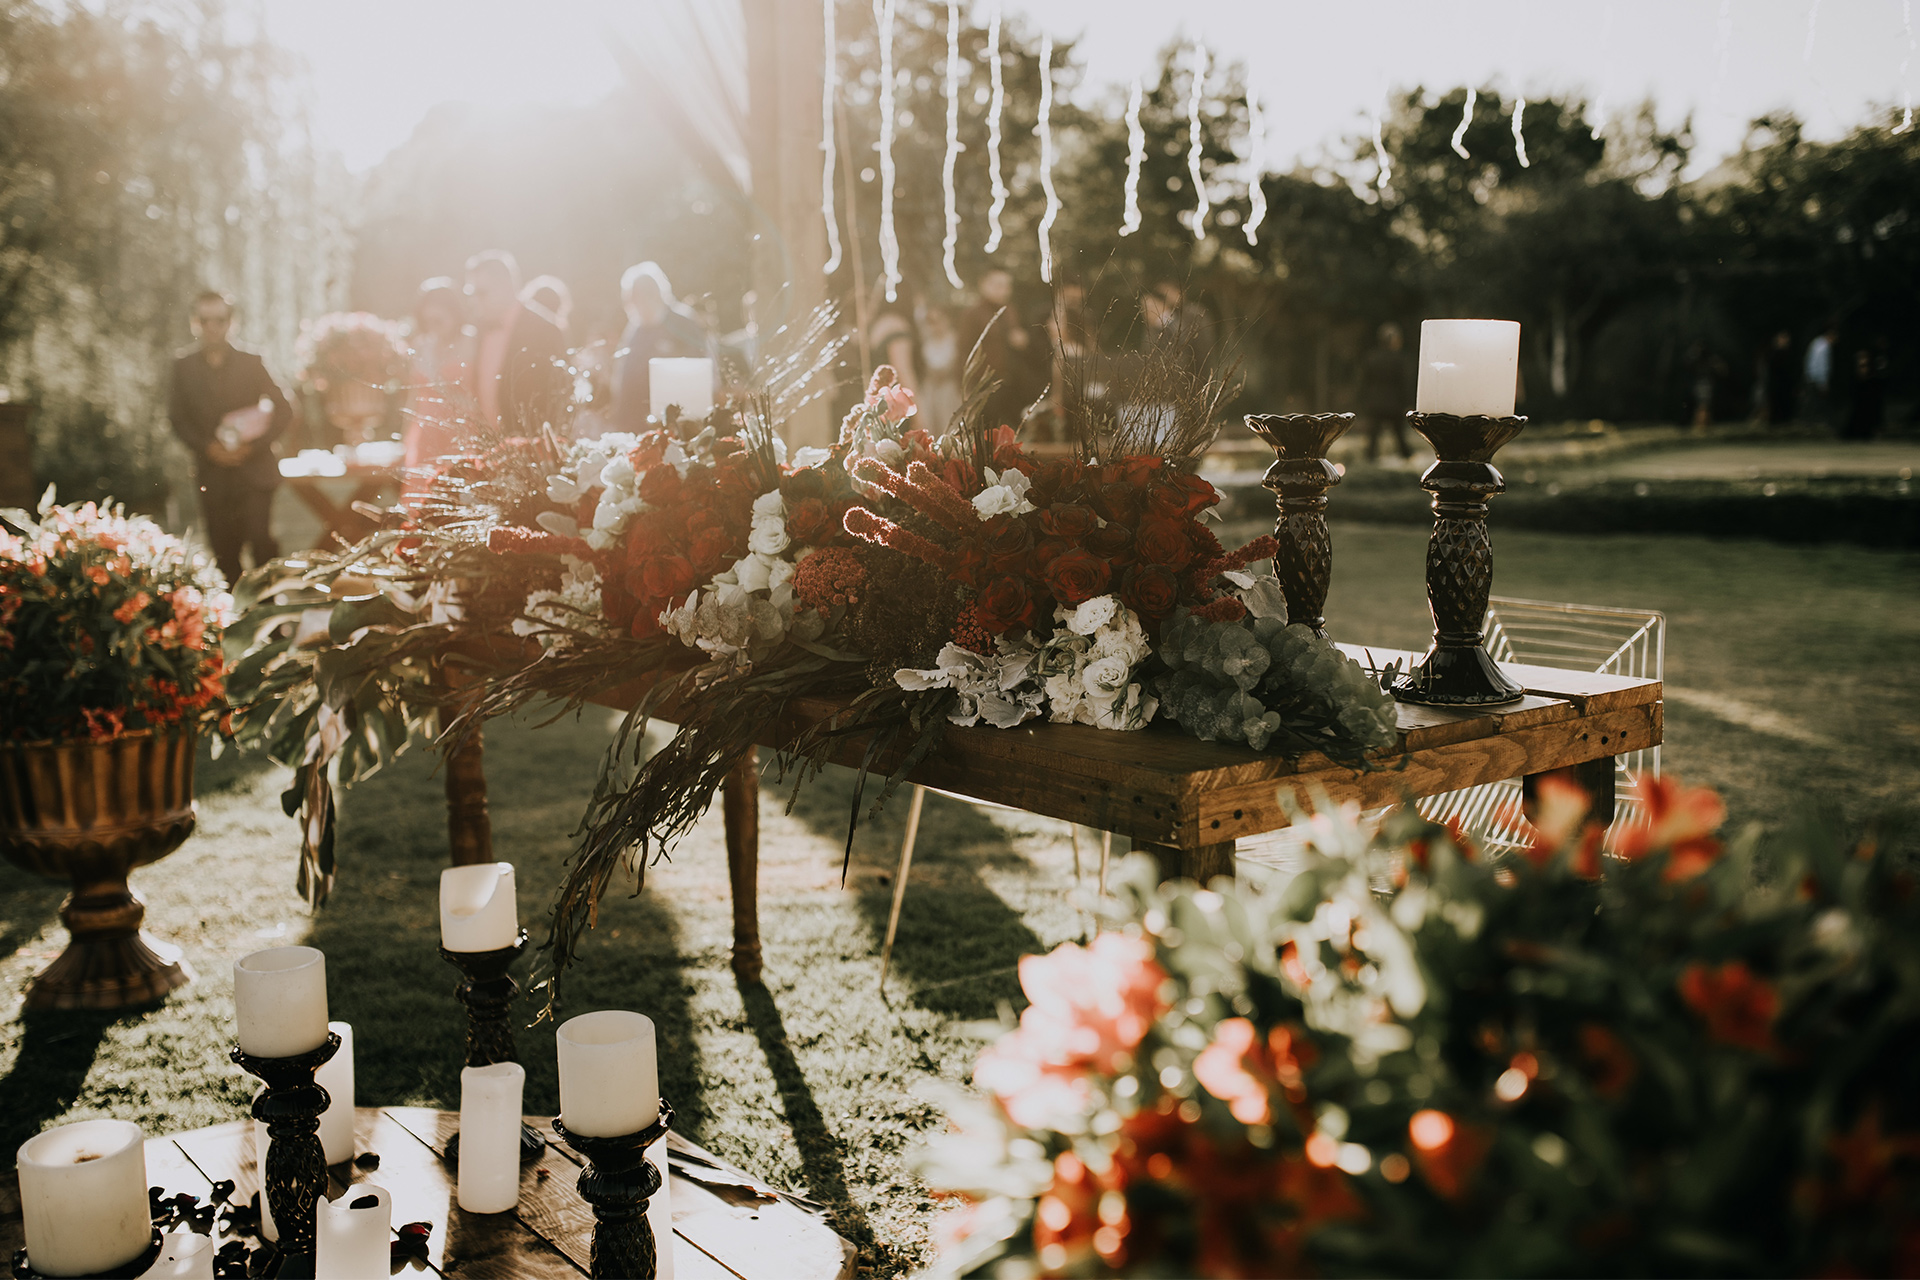 Wedding table setup with lush berry toned florals and various candles outside.